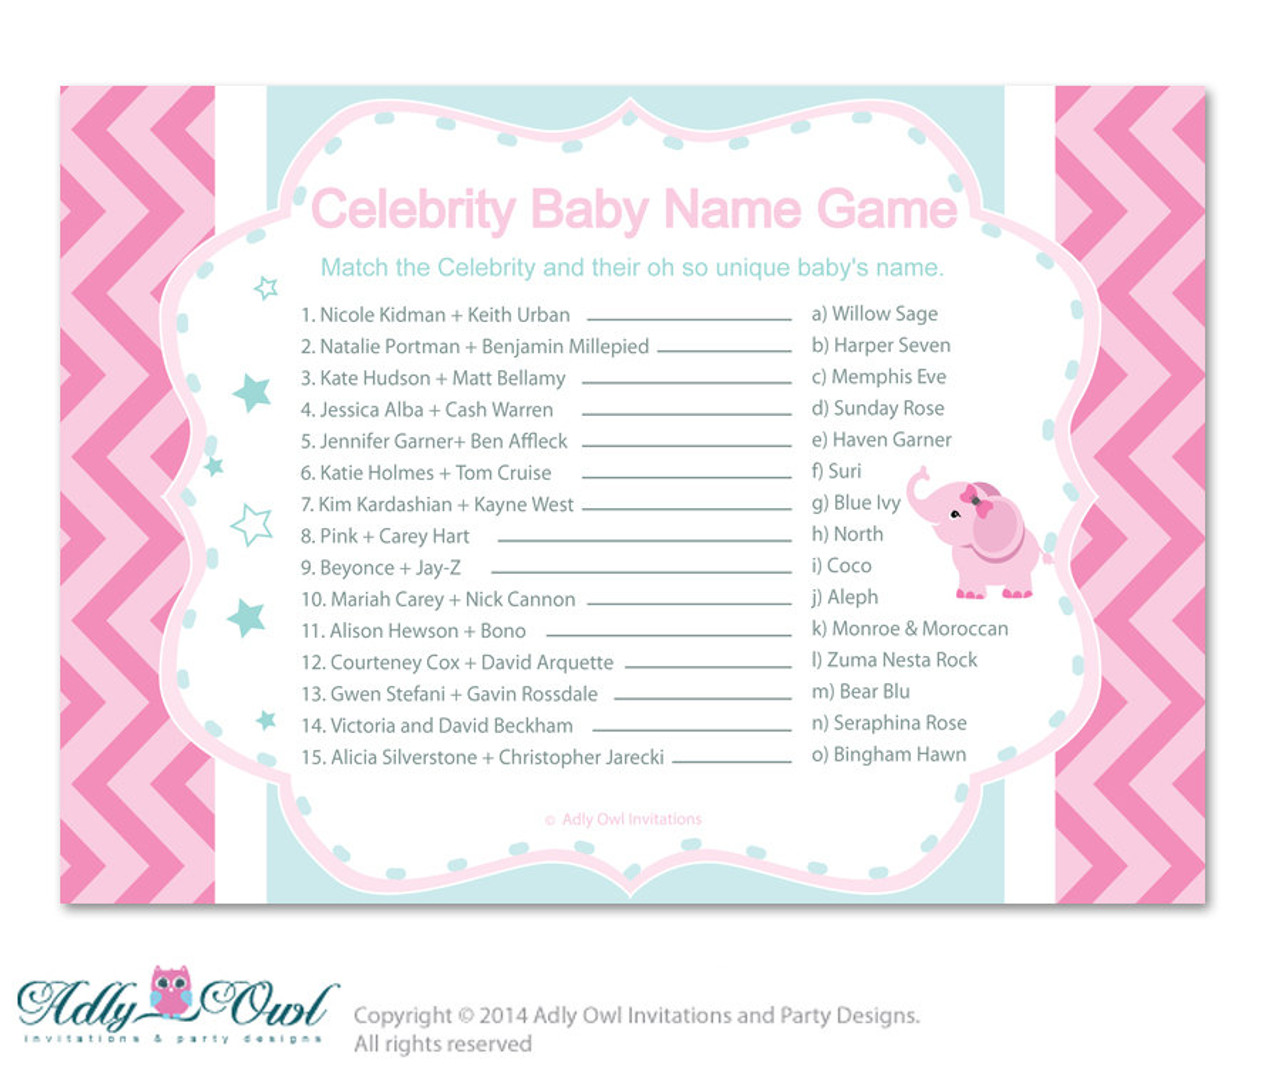 picture regarding Celebrity Baby Name Game Printable referred to as Lady Elephant Superstar Reputation Recreation, Bet Movie star Little one Reputation recreation, well known youngster names Elephant Shower Do it yourself Aqua Red Teal